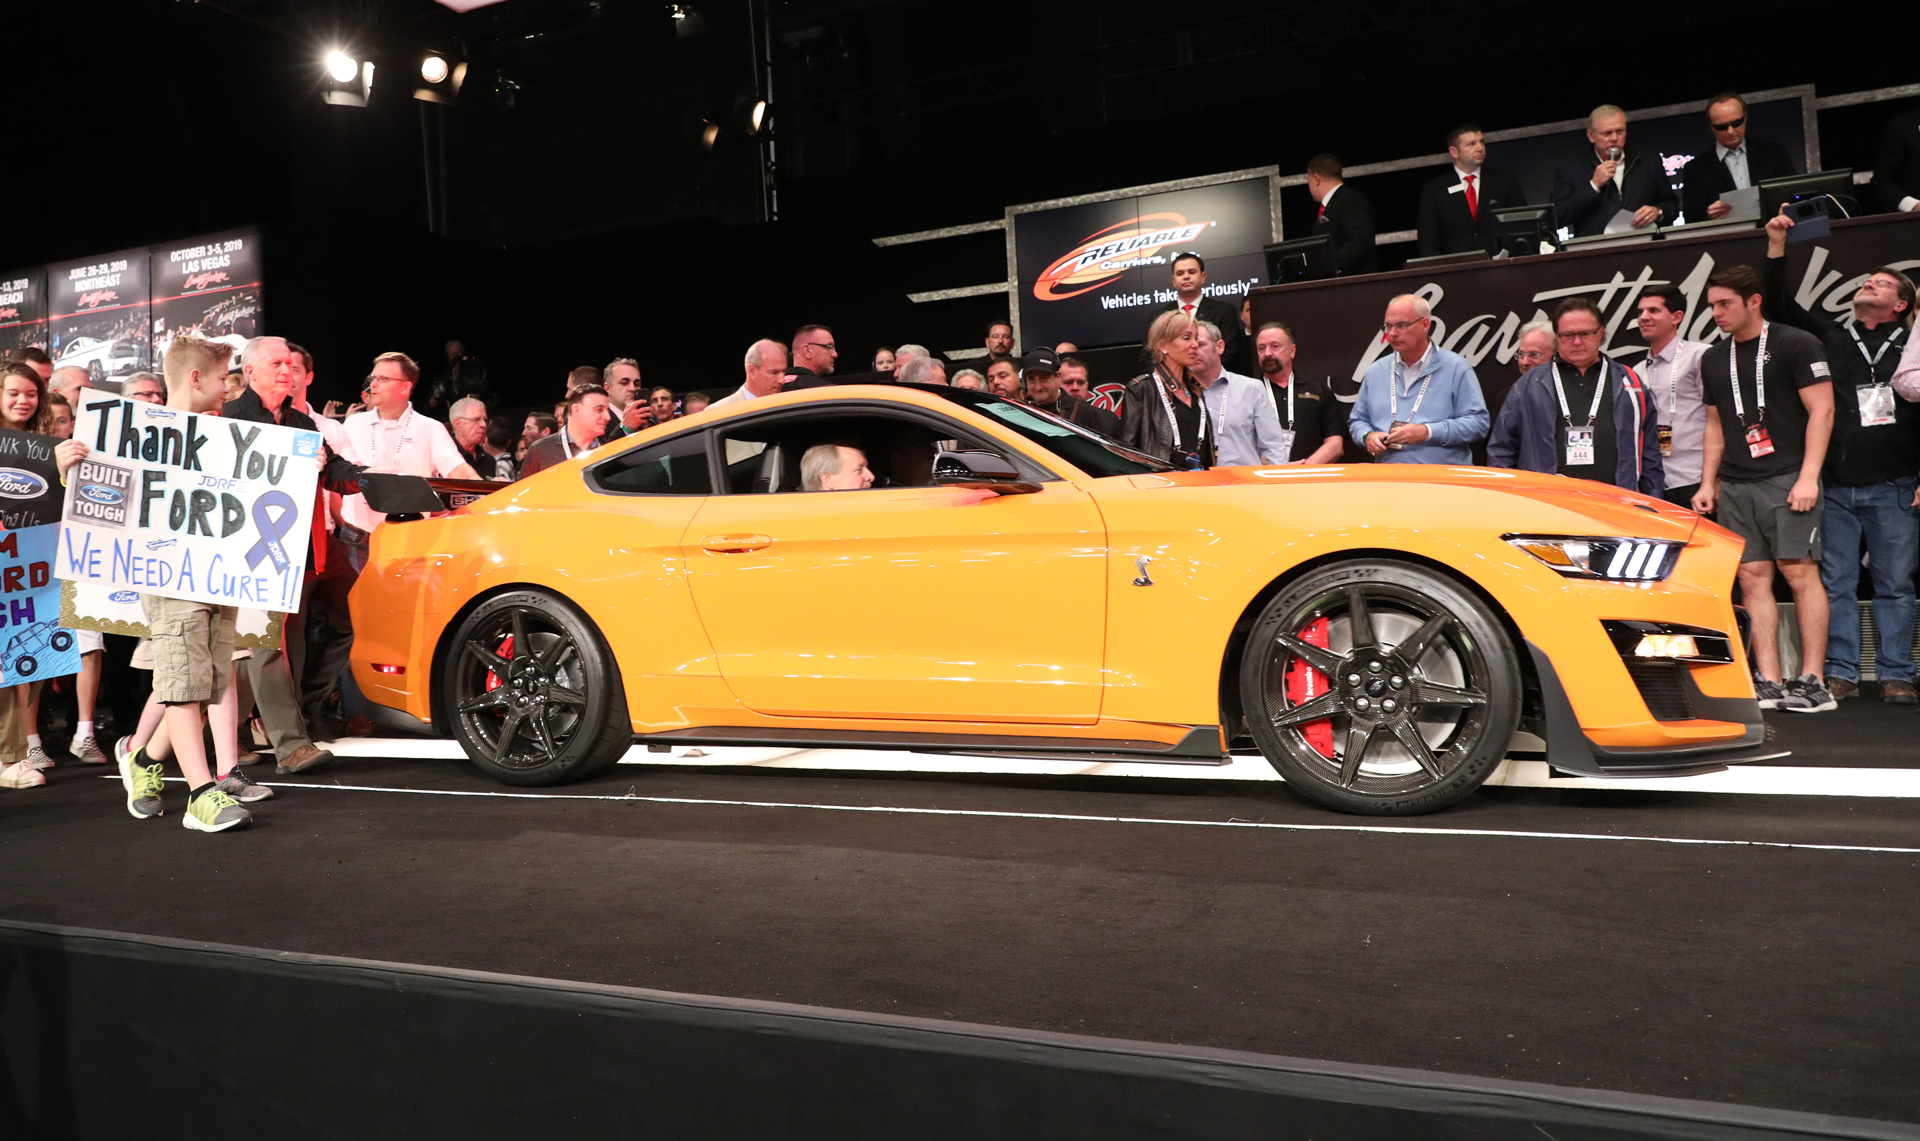 2020 ford mustang shelby gt500 001 sells for 1 1m